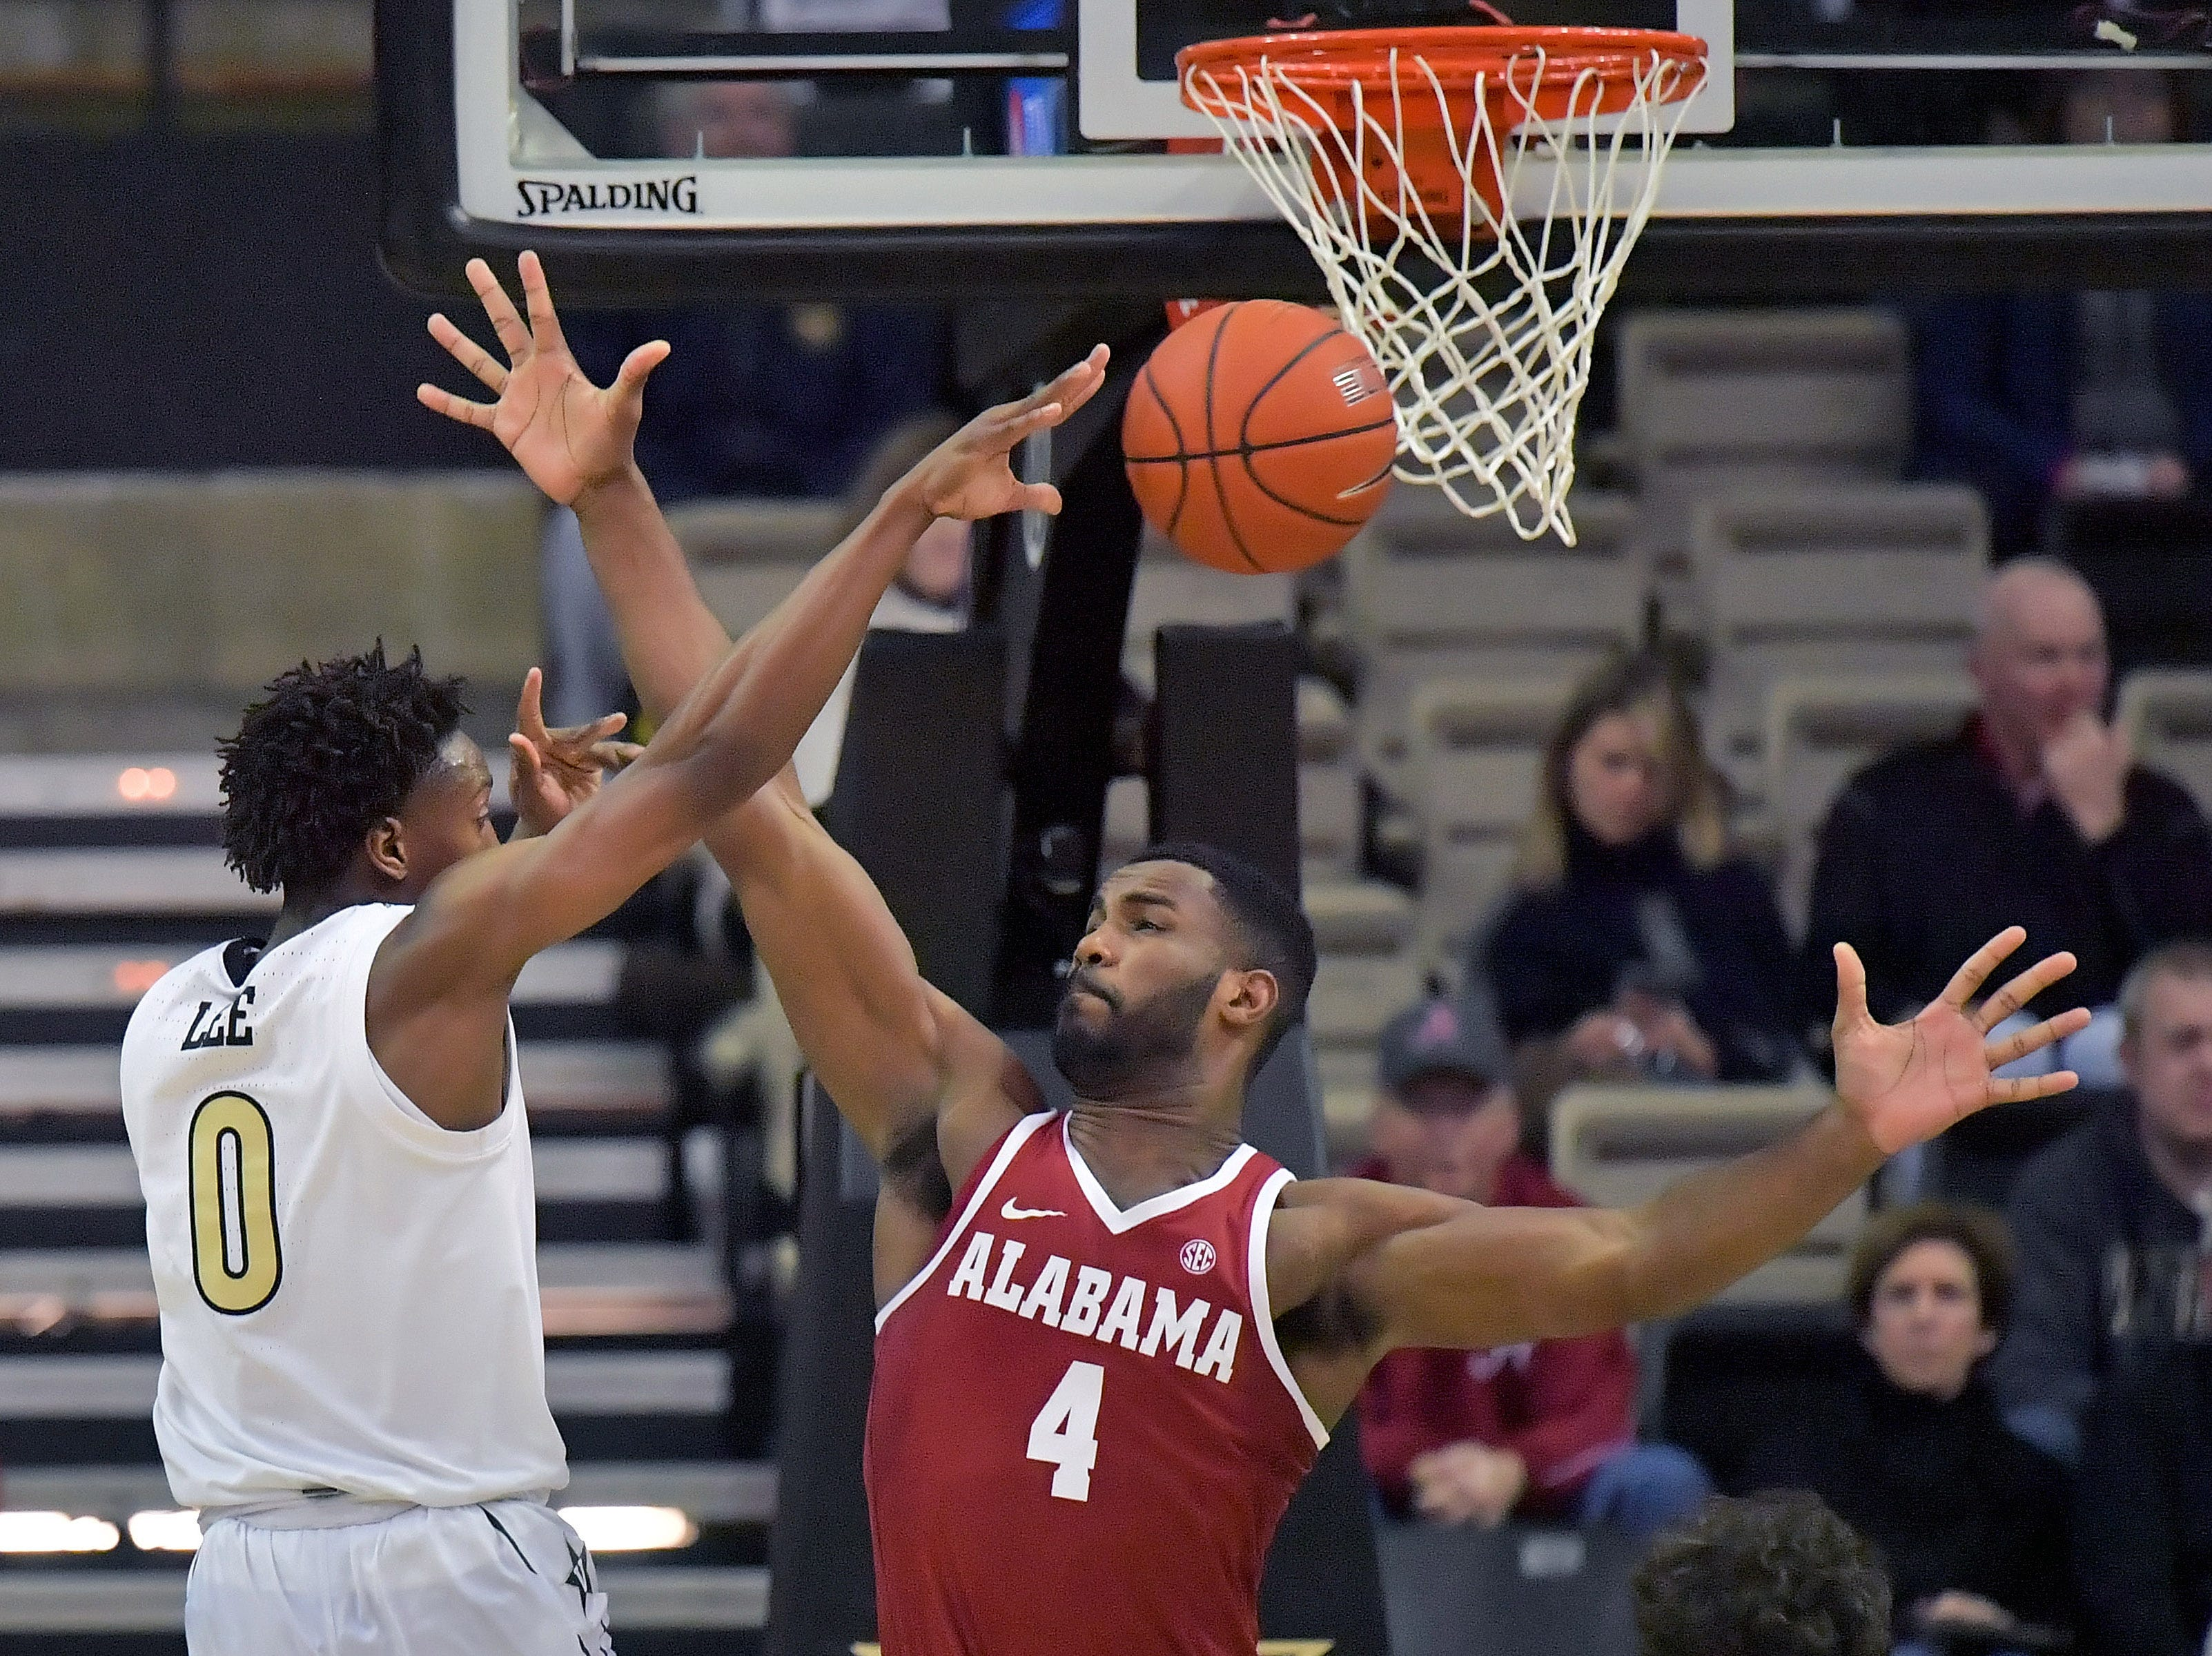 Feb 9, 2019; Nashville, TN, USA; Vanderbilt Commodores guard Saben Lee (0) passes against Alabama Crimson Tide forward Daniel Giddens (4) during the second half at Memorial Gymnasium. Alabama won 77-67. Mandatory Credit: Jim Brown-USA TODAY Sports